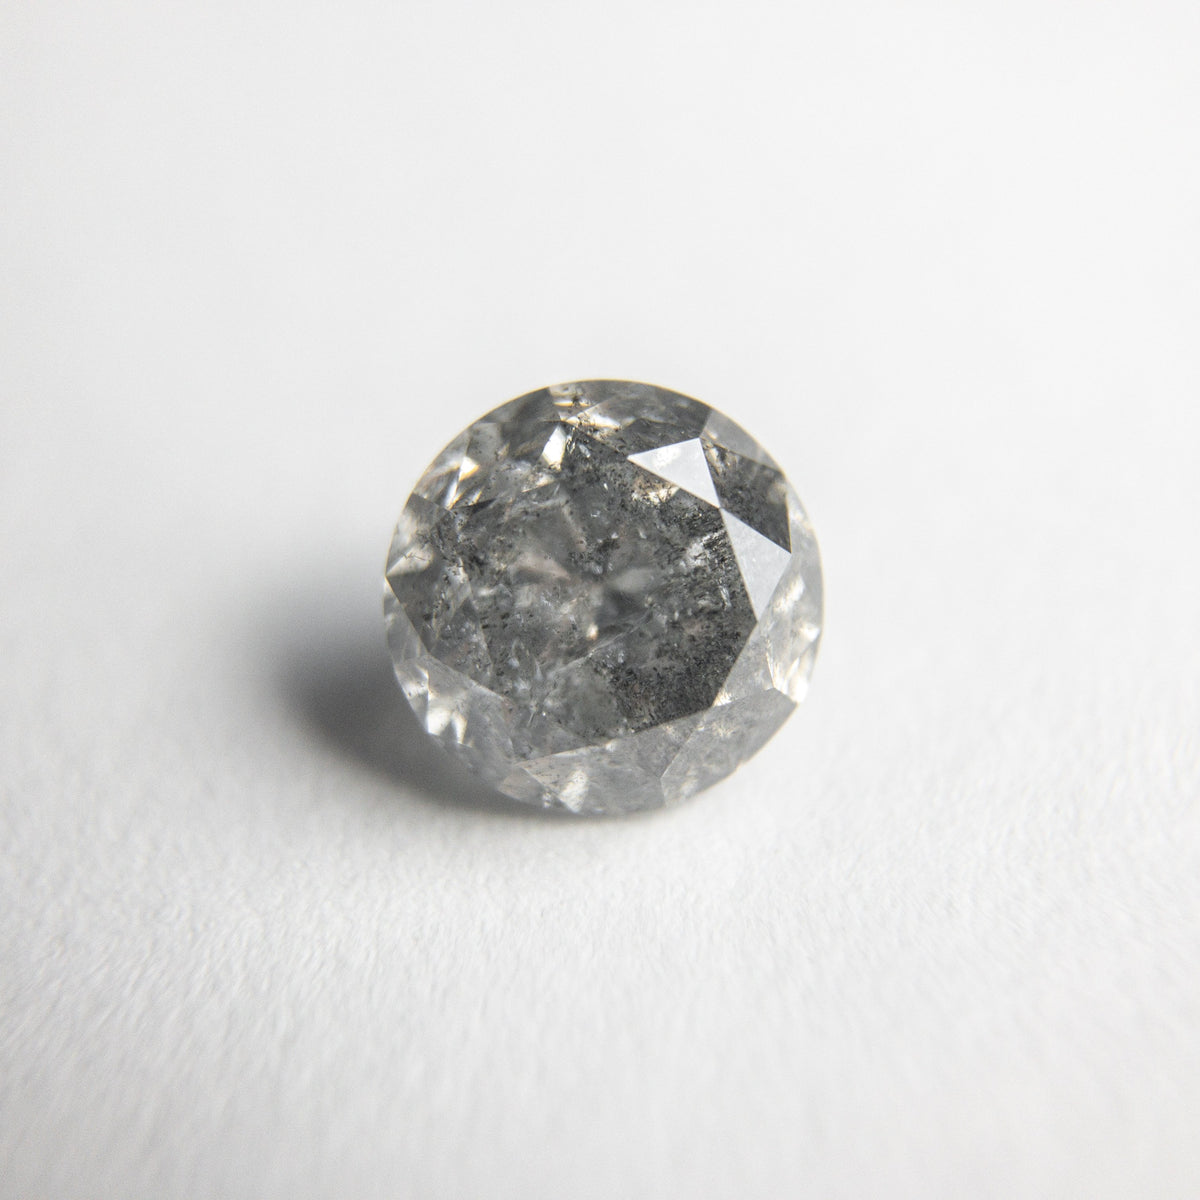 1.01ct 6.08x5.99x4.28mm Round Brilliant 18447-02